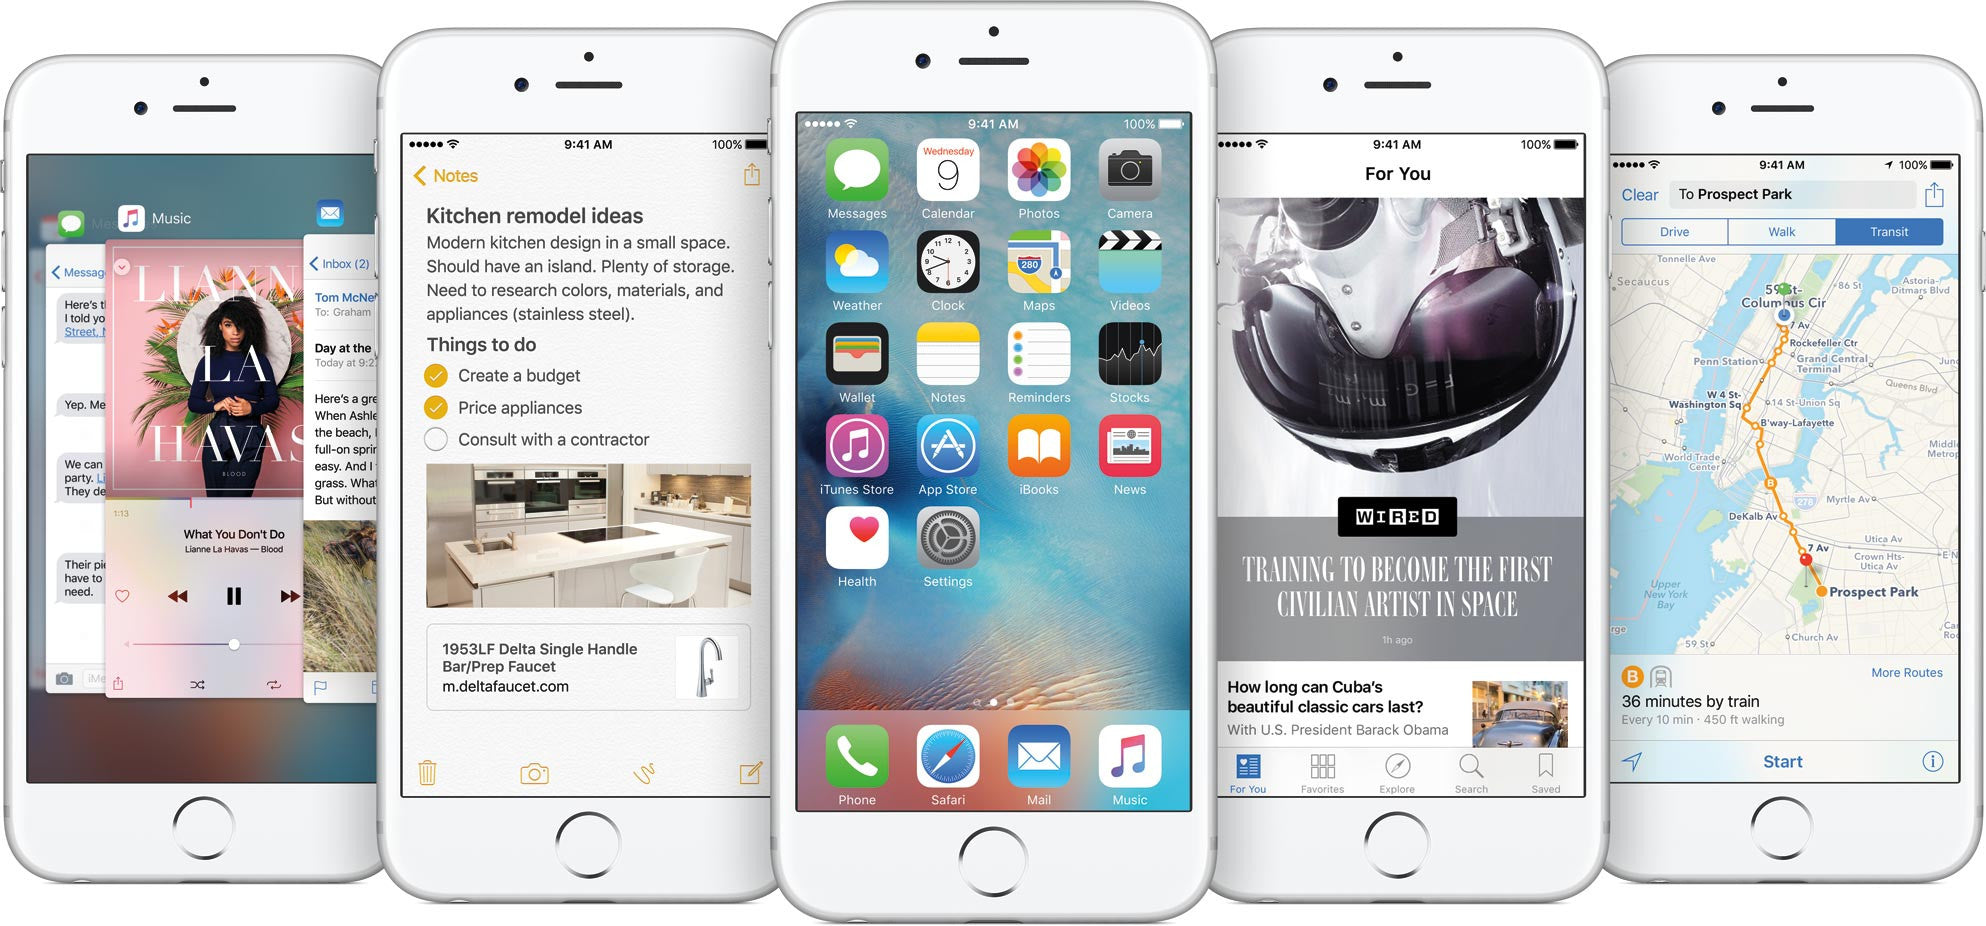 Make it new again with iOS 9